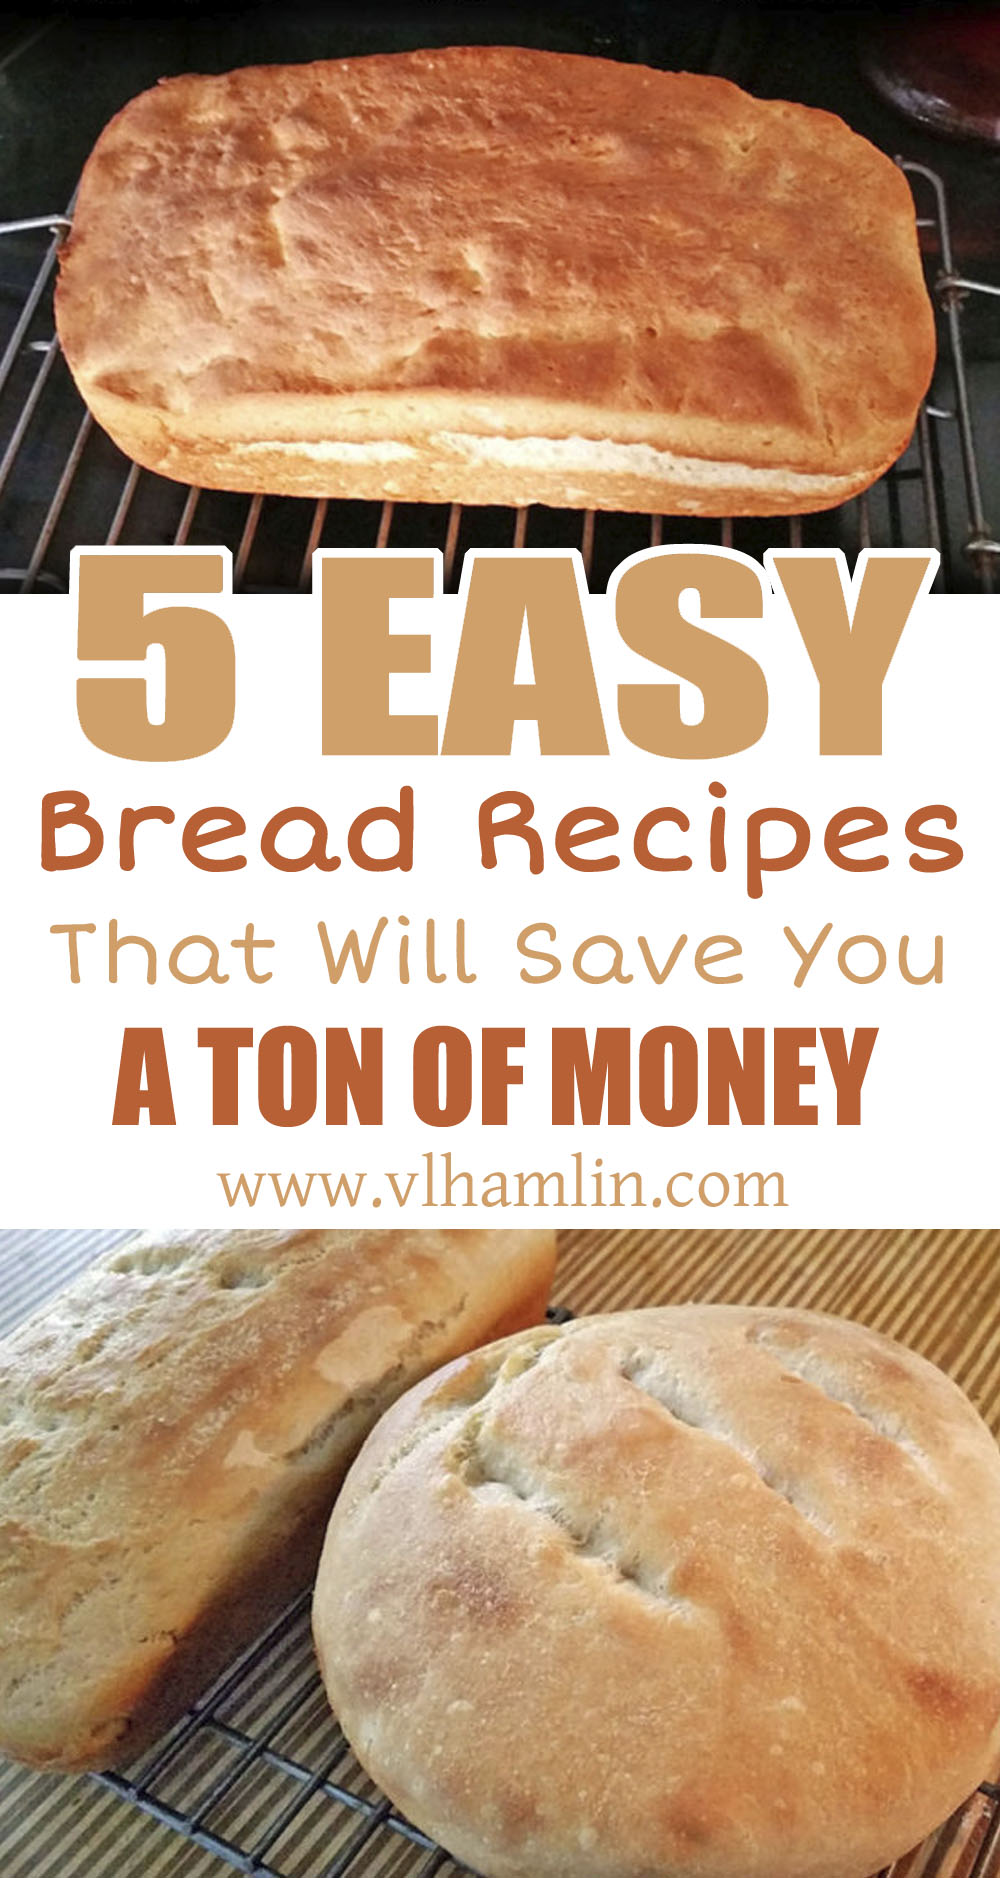 5 Easy Bread Recipes That Will Save You A Ton of Money